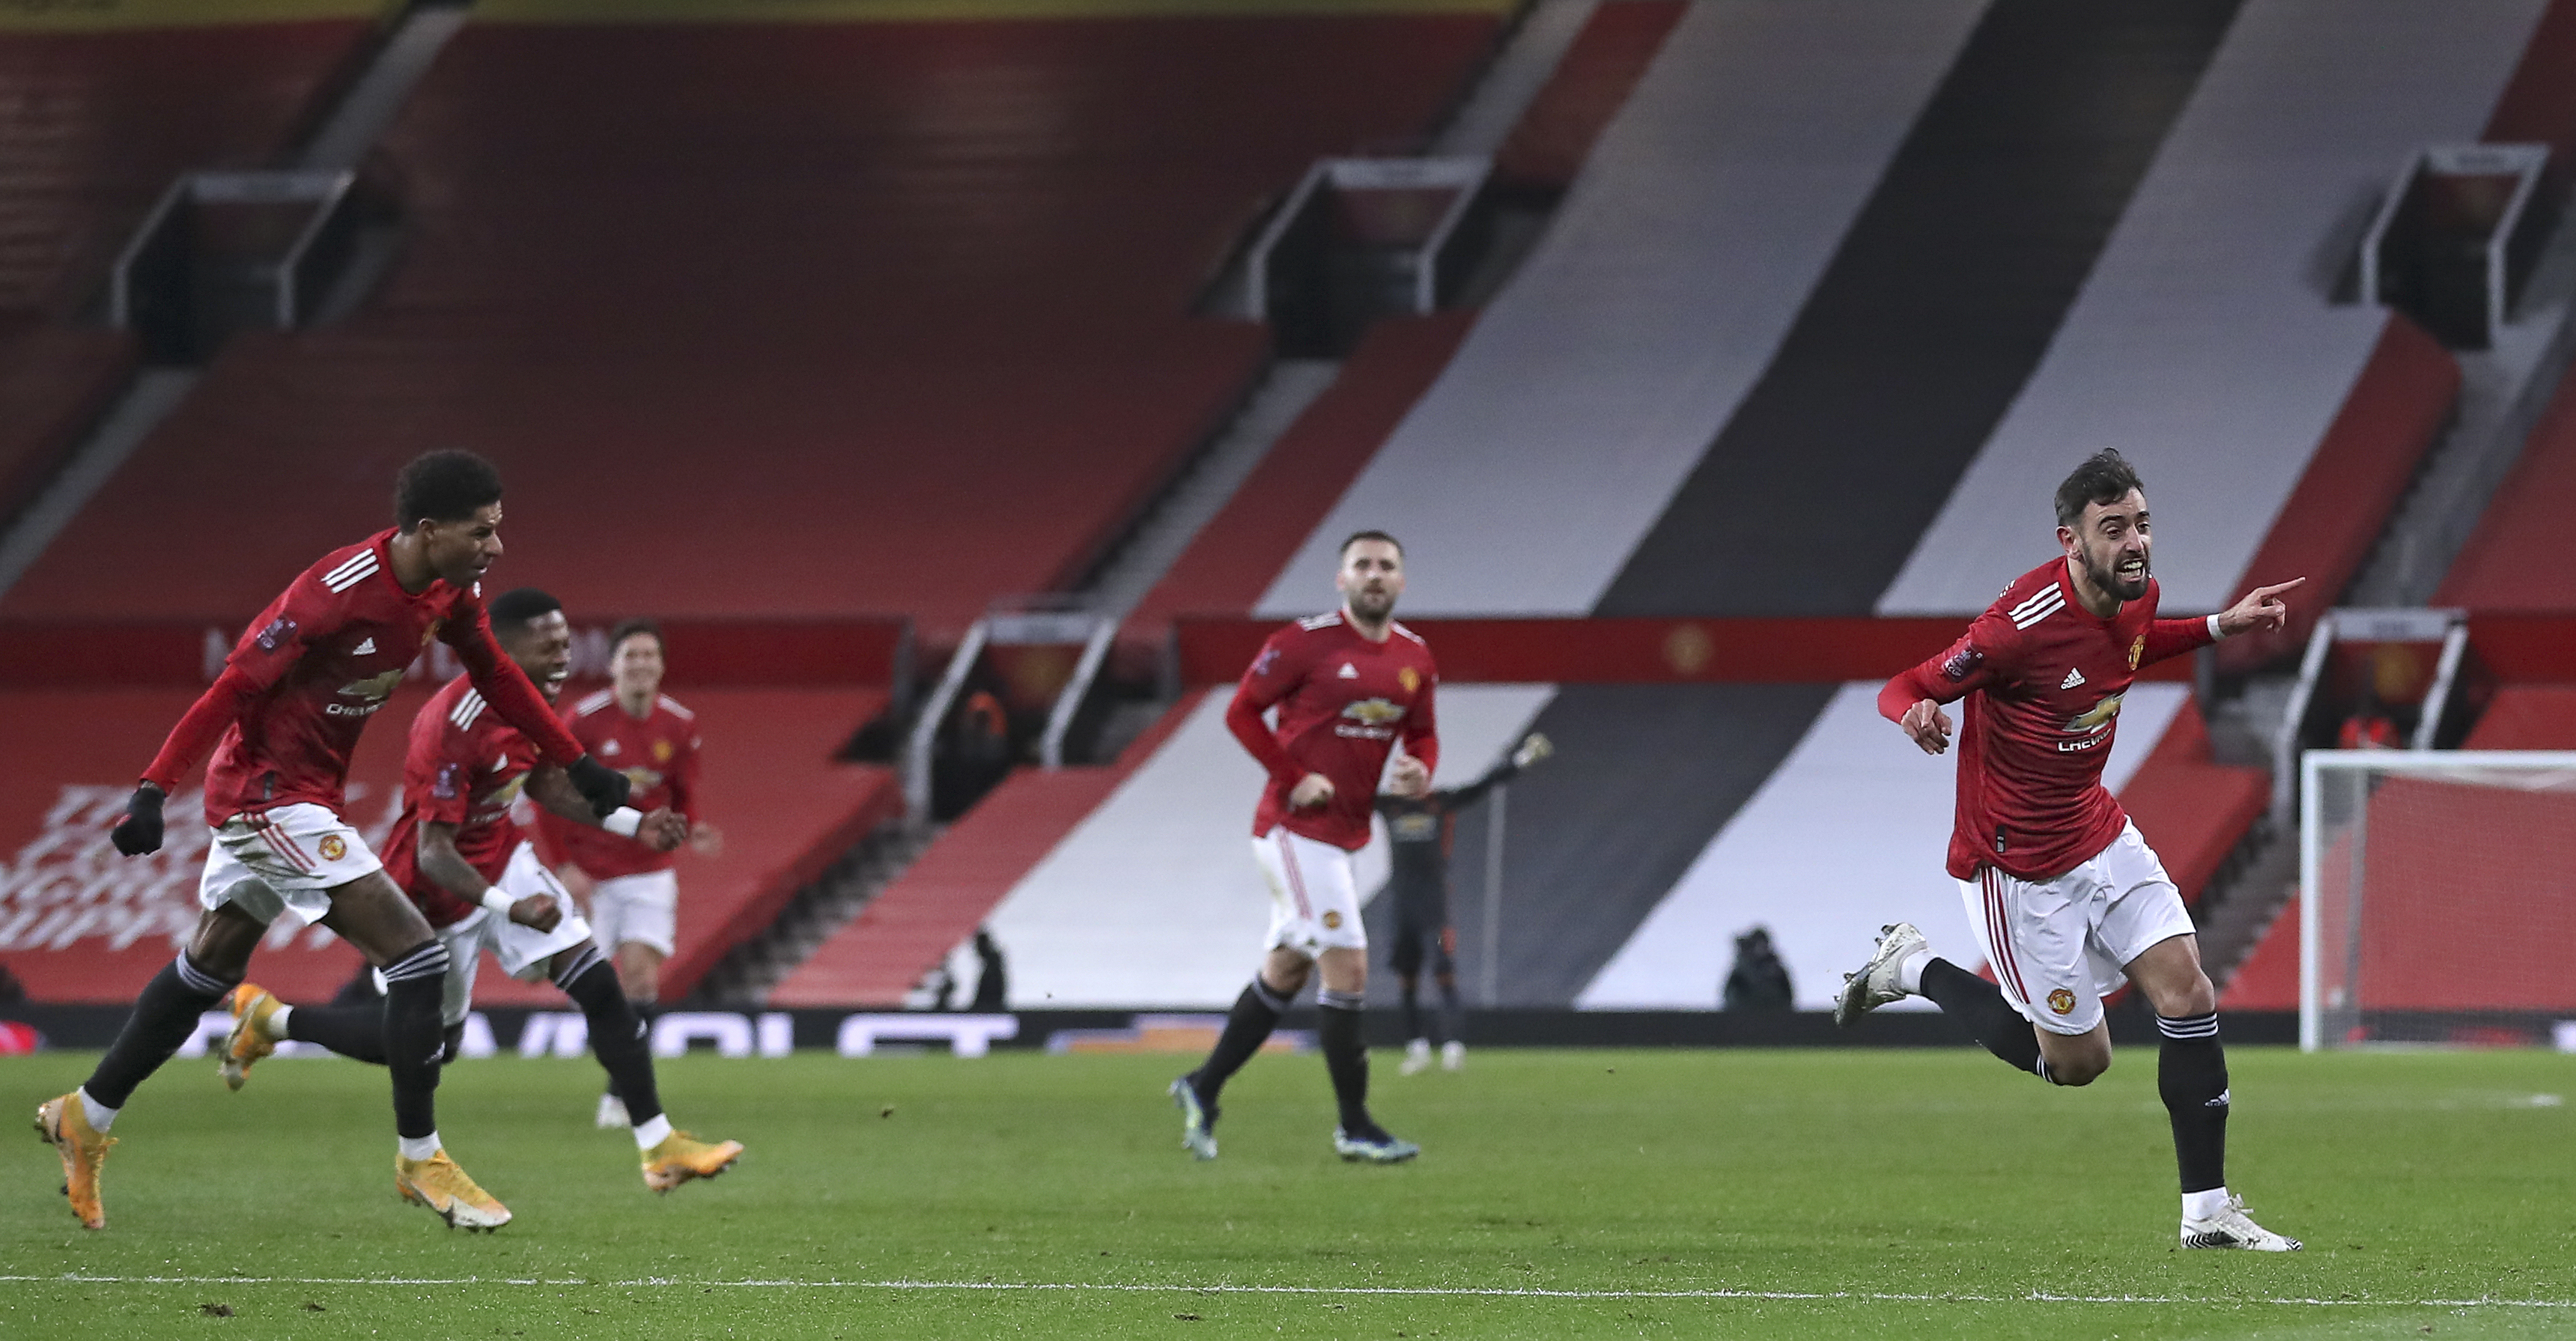 Manchester United's Bruno Fernandes, right, celebrates scoring his side's third goal during the English FA Cup 4th round soccer match between Manchester United and Liverpool at Old Trafford in Manchester, England, Sunday, Jan. 24, 2021. Photo:  AP